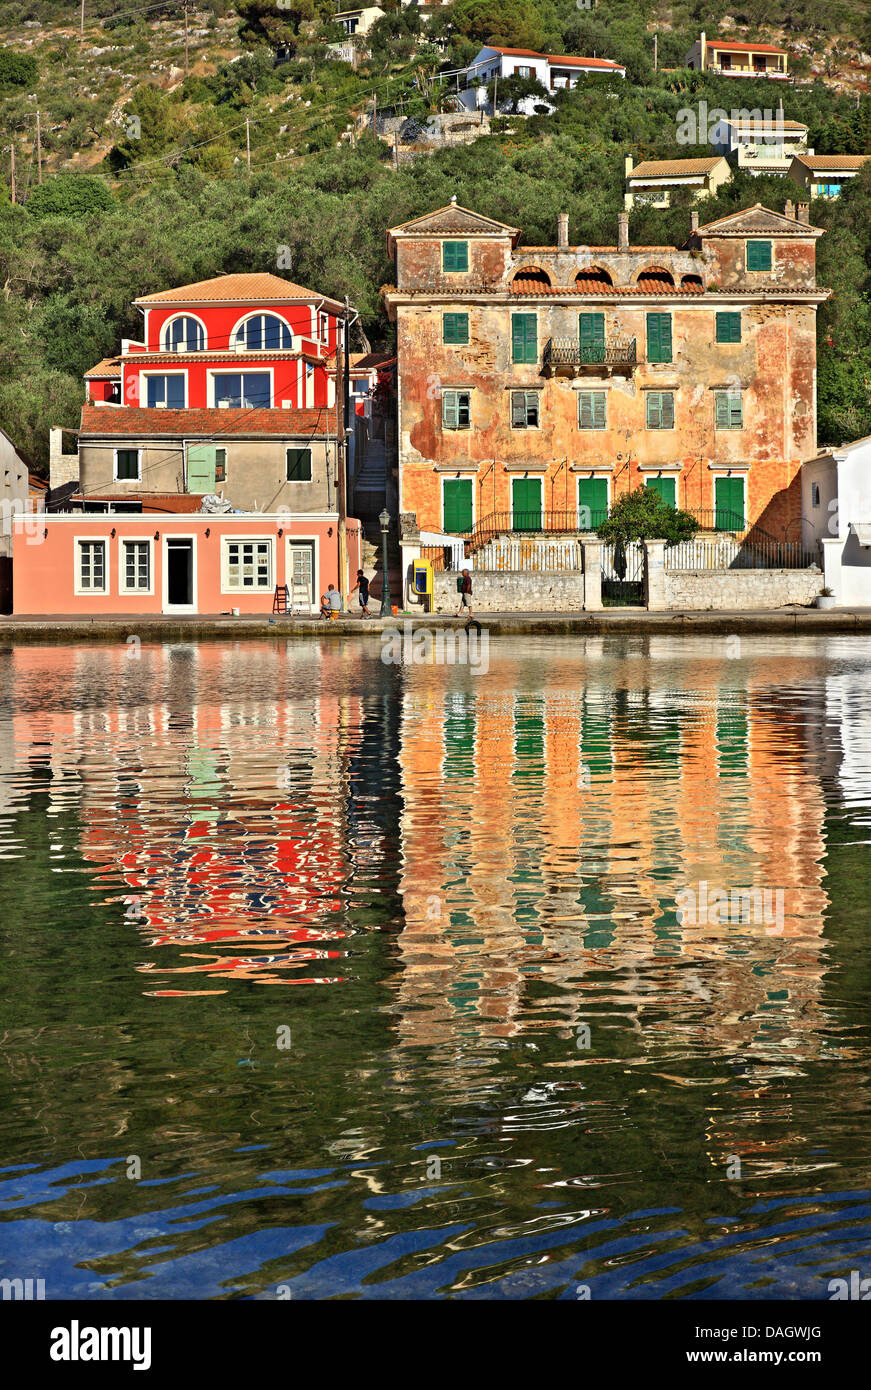 The old British Governor's residence. Gaios is the 'capital' of Paxos ('Paxi') island, Ionian - Stock Image